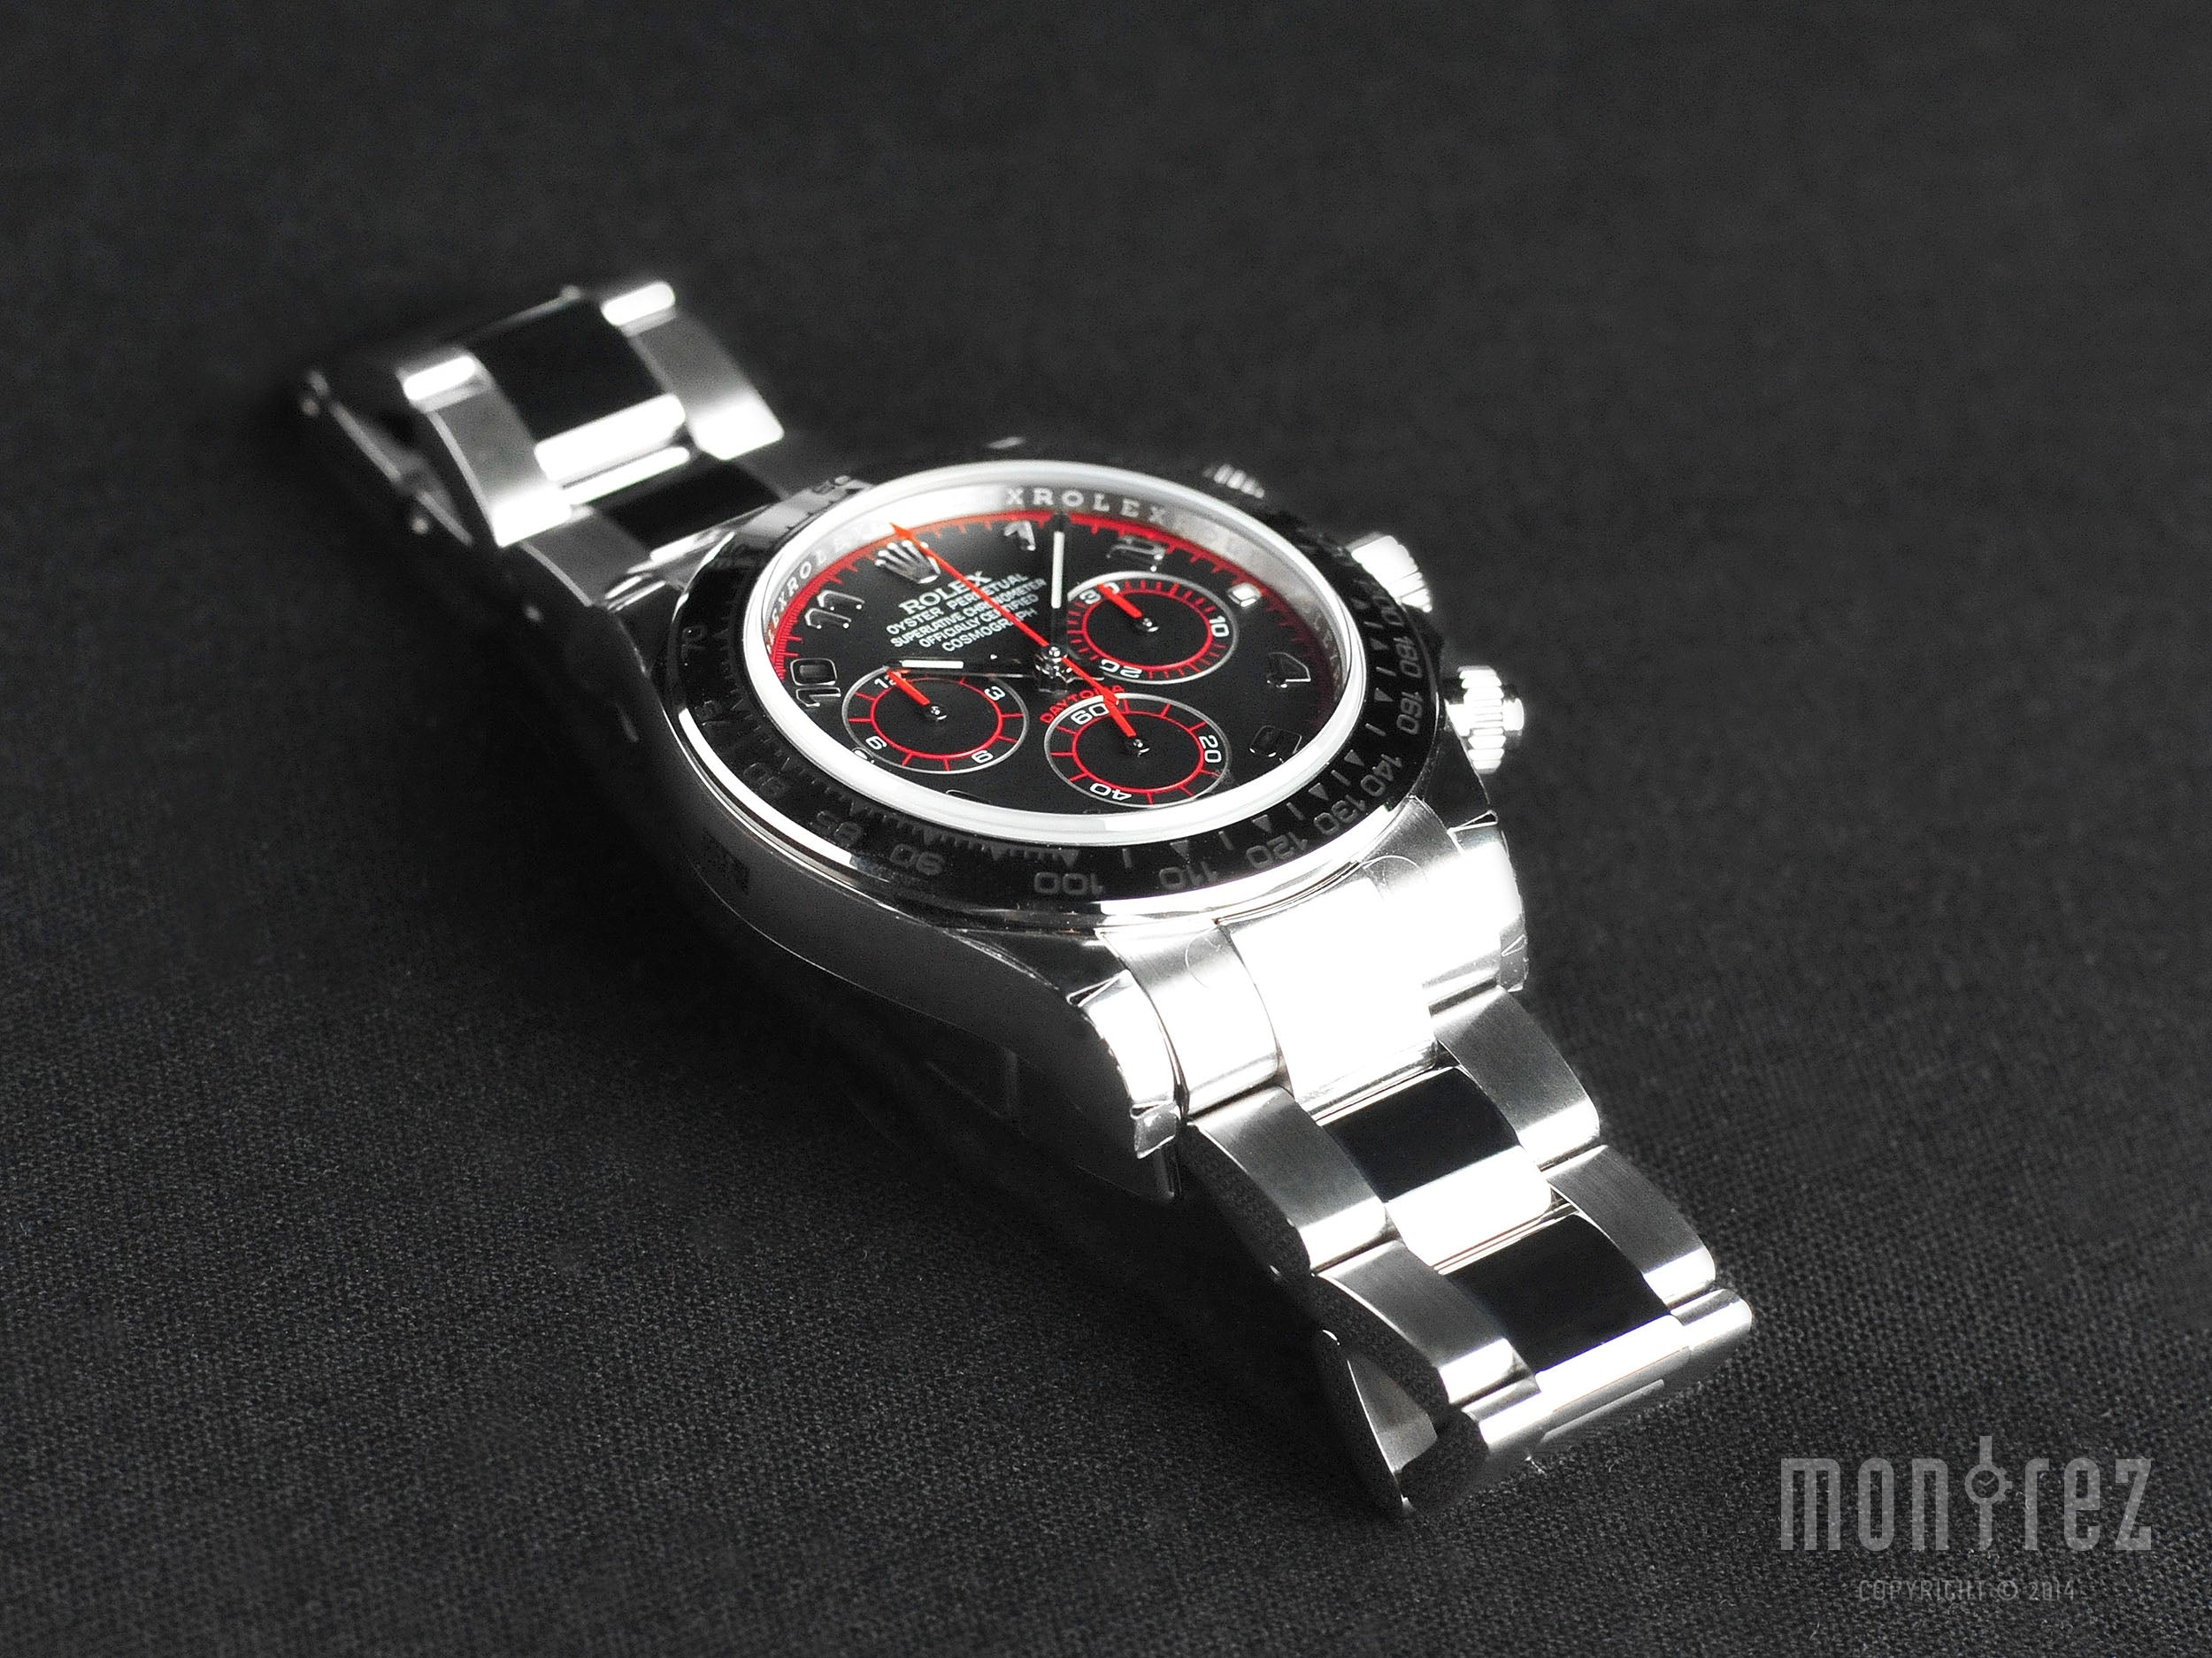 Rolex Cosmograph Daytona 40mm 116509 Black Dial (Out of Production)